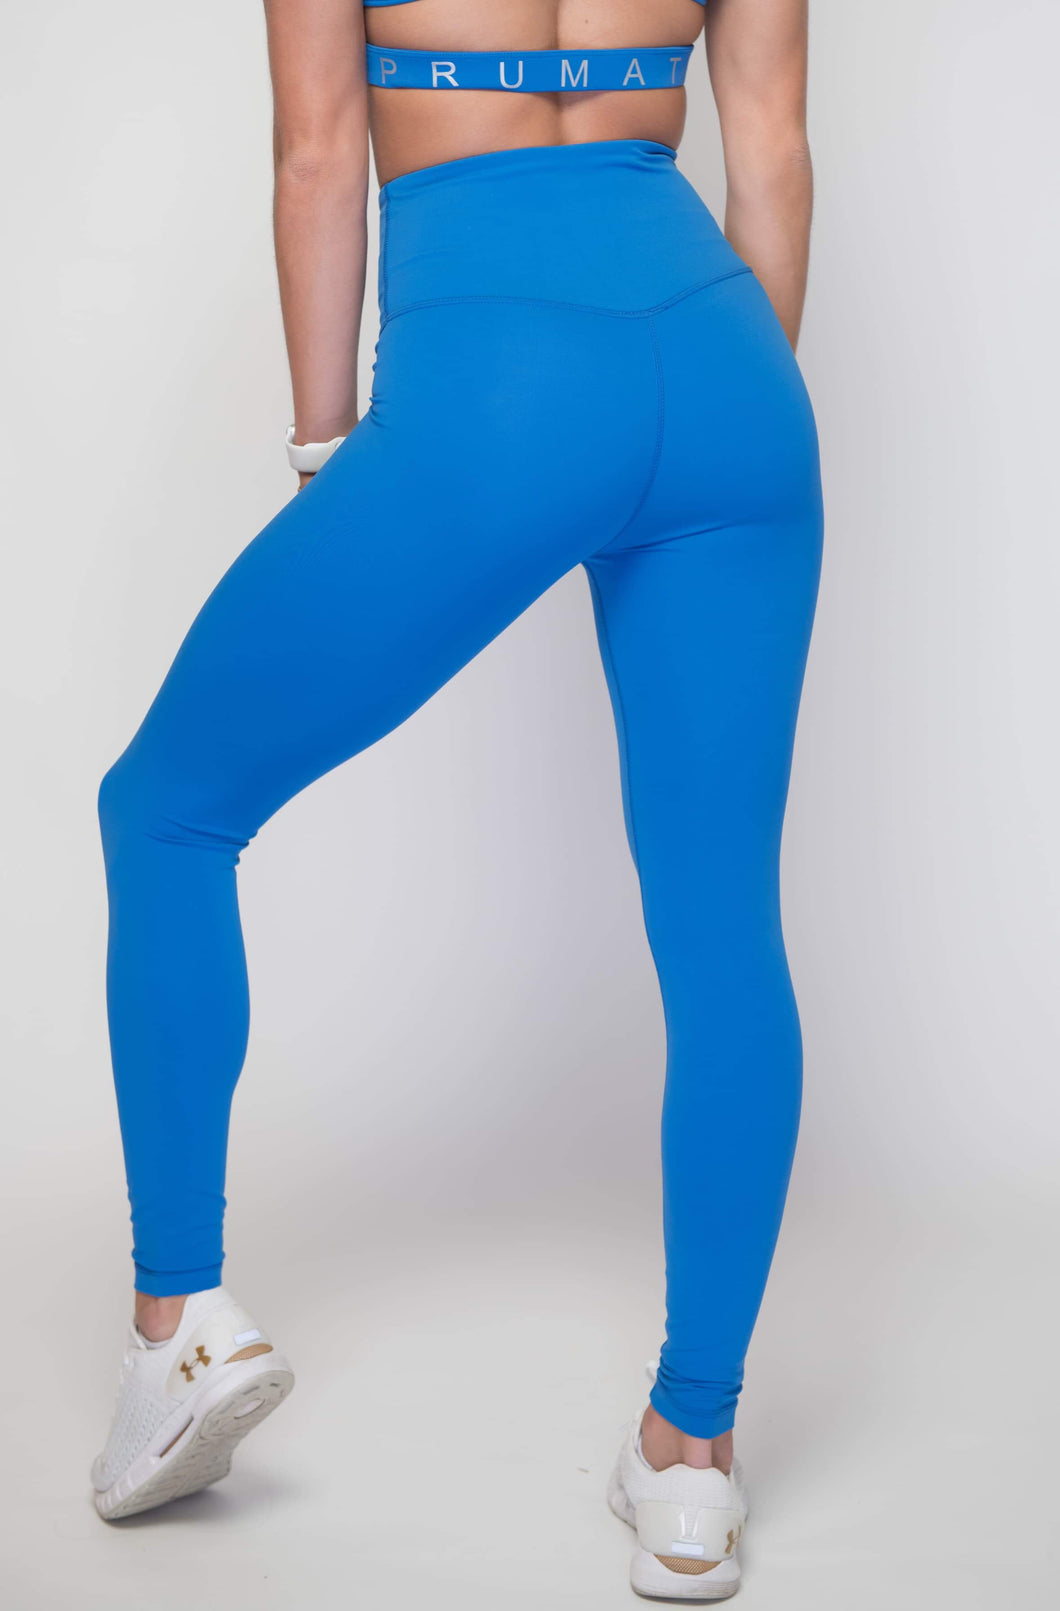 Women's Performance Stretch Bottoms High Rise | High Waist Leggings  | Princess Blue